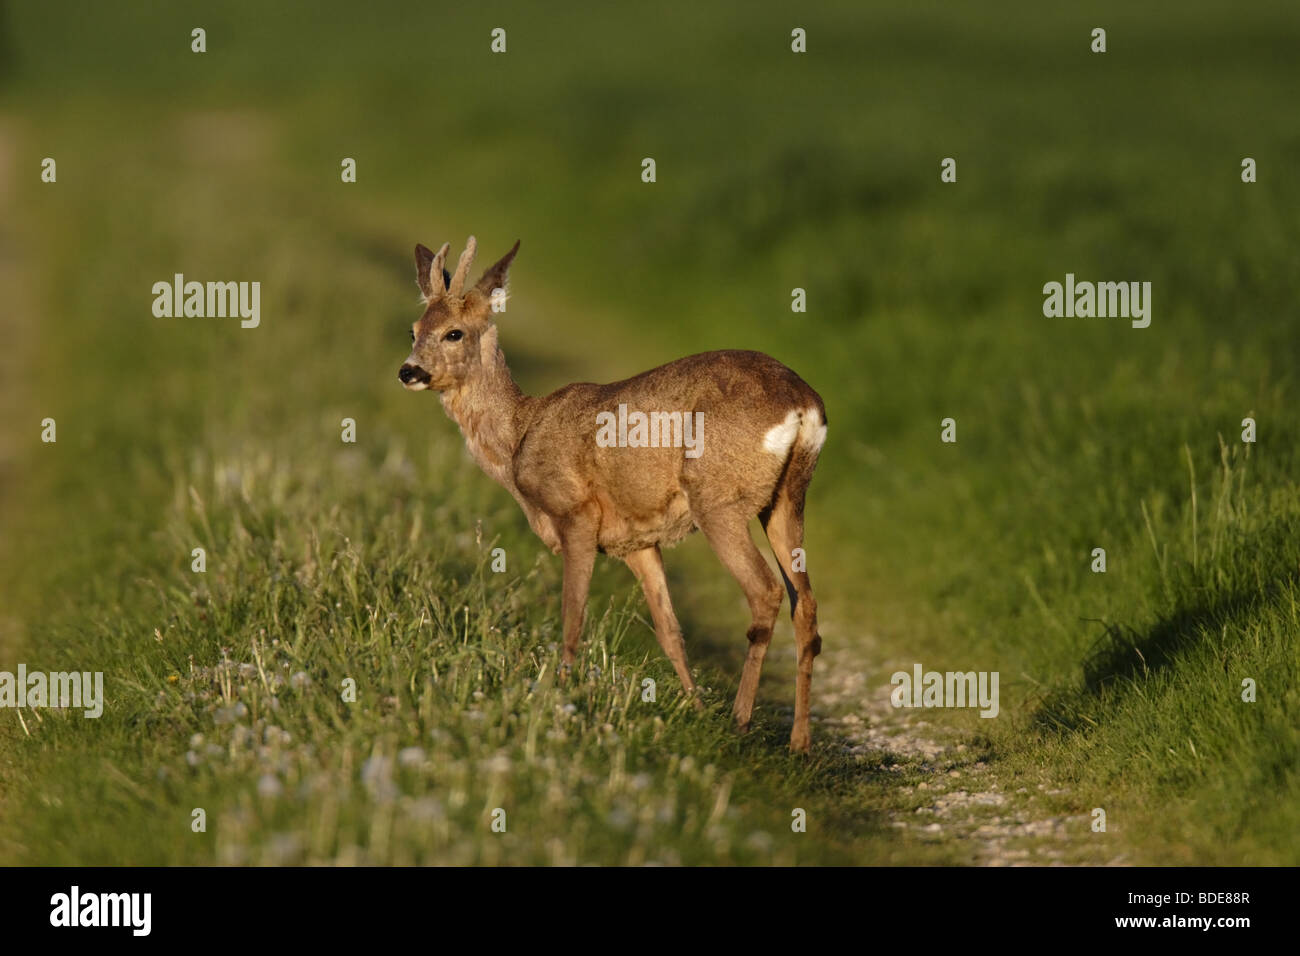 Europäisches Reh (Capreolus capreolus) roe deer Stock Photo